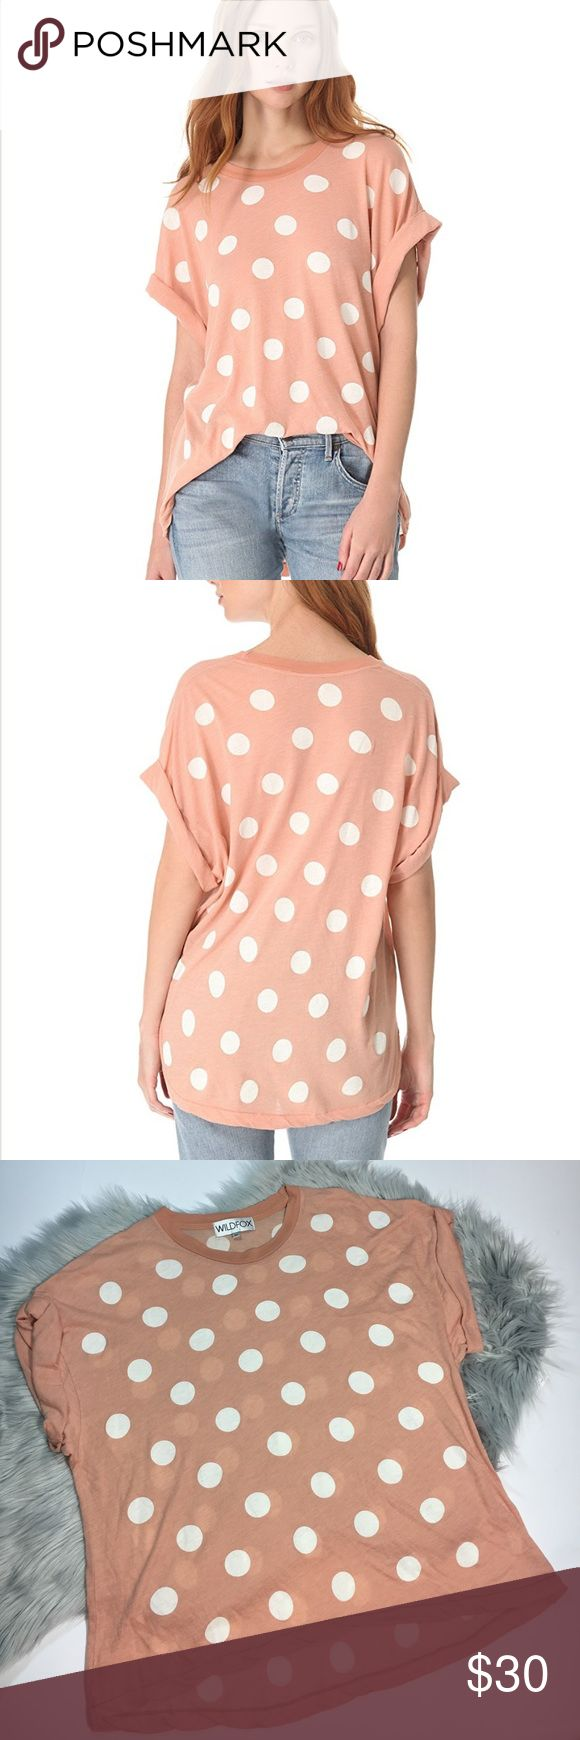 Wildfox polka dot boy tee shirt New M An oversized polka-dot tee evokes a fun, playful mood. Cuffed short sleeves.  Fabric: Soft jersey. 50% cotton/50% polyester. Hand wash. Made in the USA.  MEASUREMENTS Length: 24in / 61cm, from shoulder Style # WILDF40420 Wildfox Tops Tees - Short Sleeve